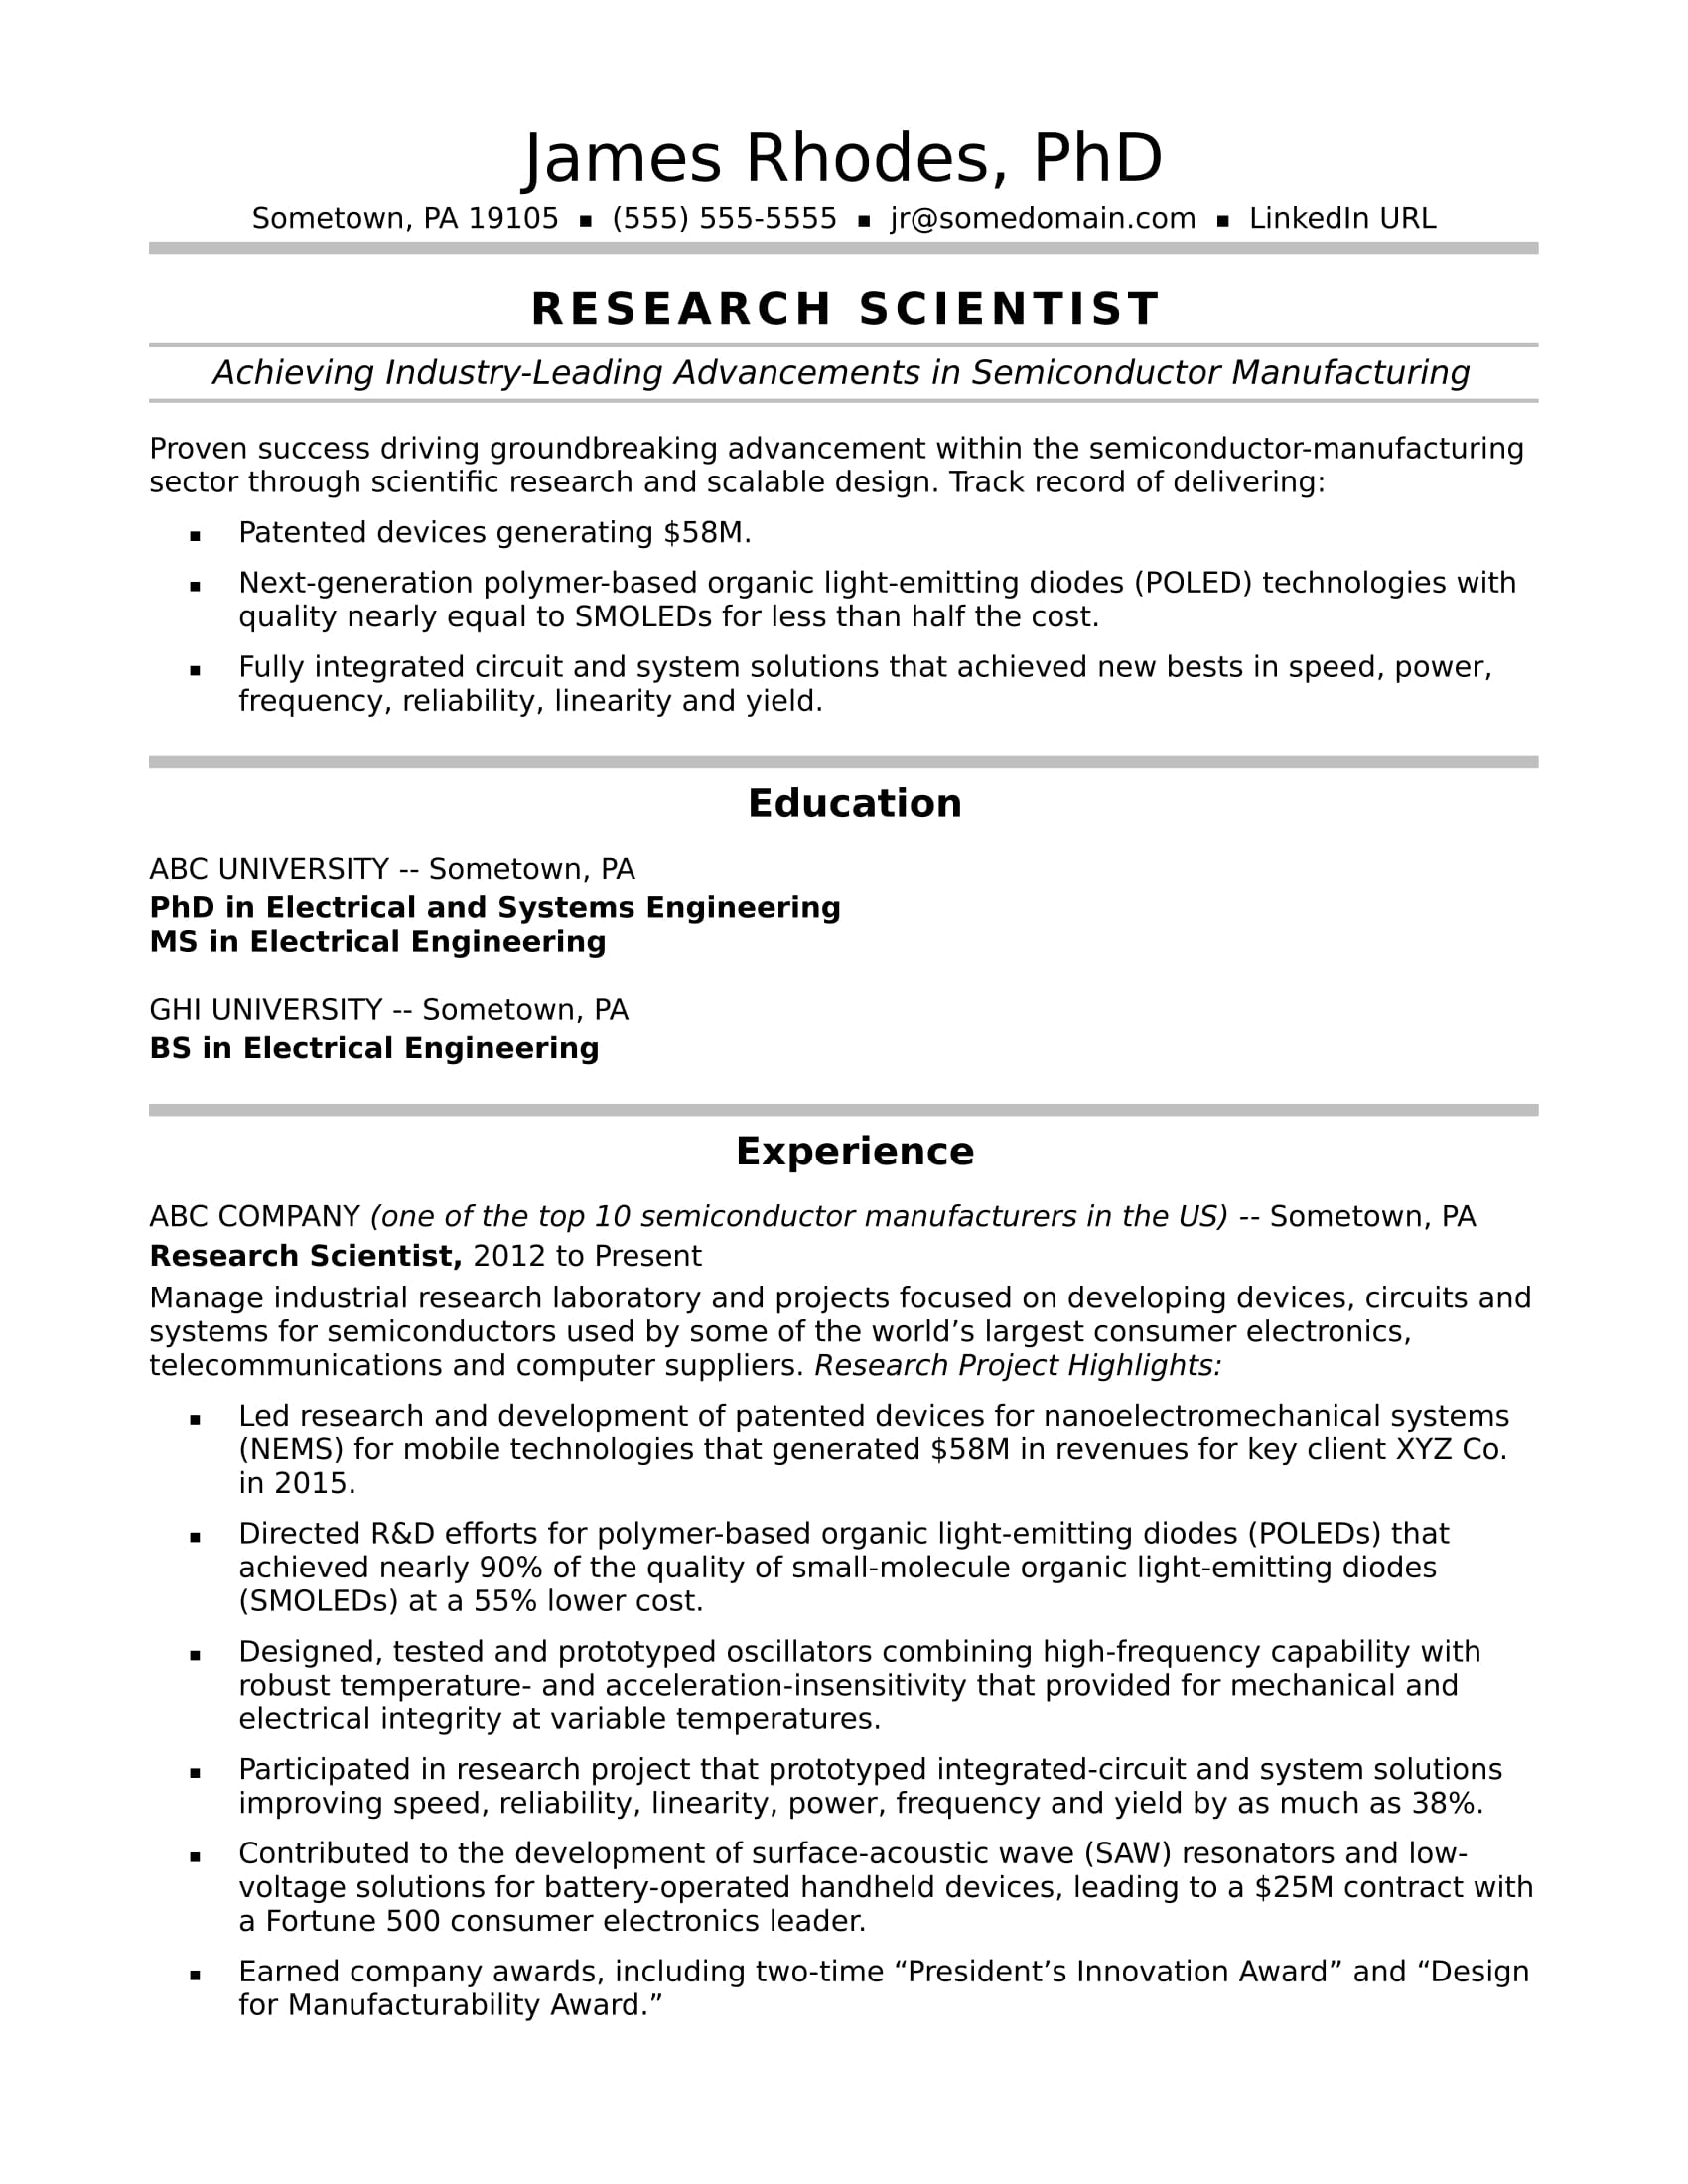 research scientist resume sample monster for position midlevel overleaf template software Resume Resume For Research Position